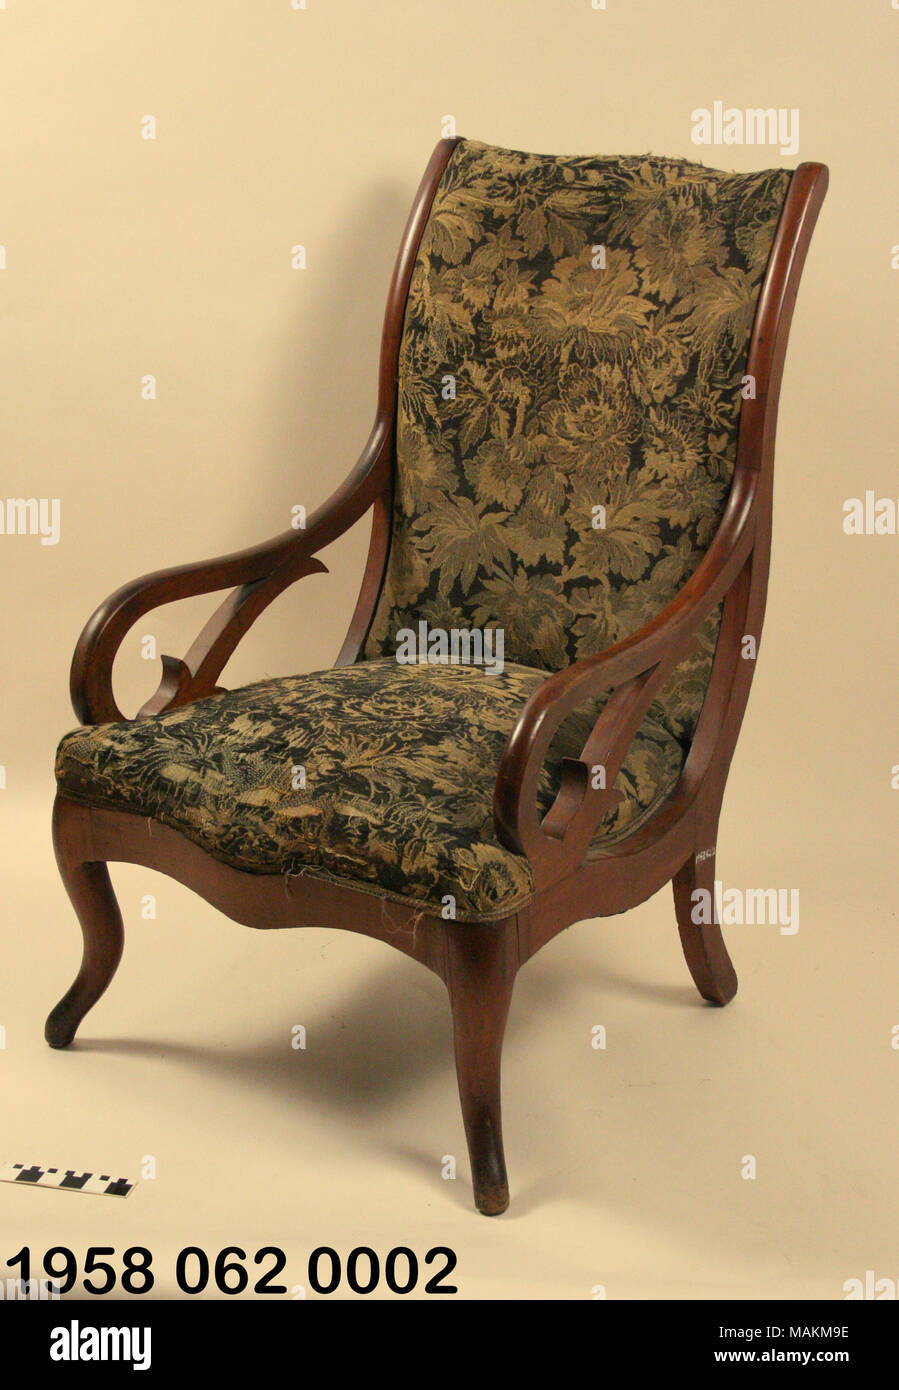 this chair along with a matching set of arm chairs and sofa were